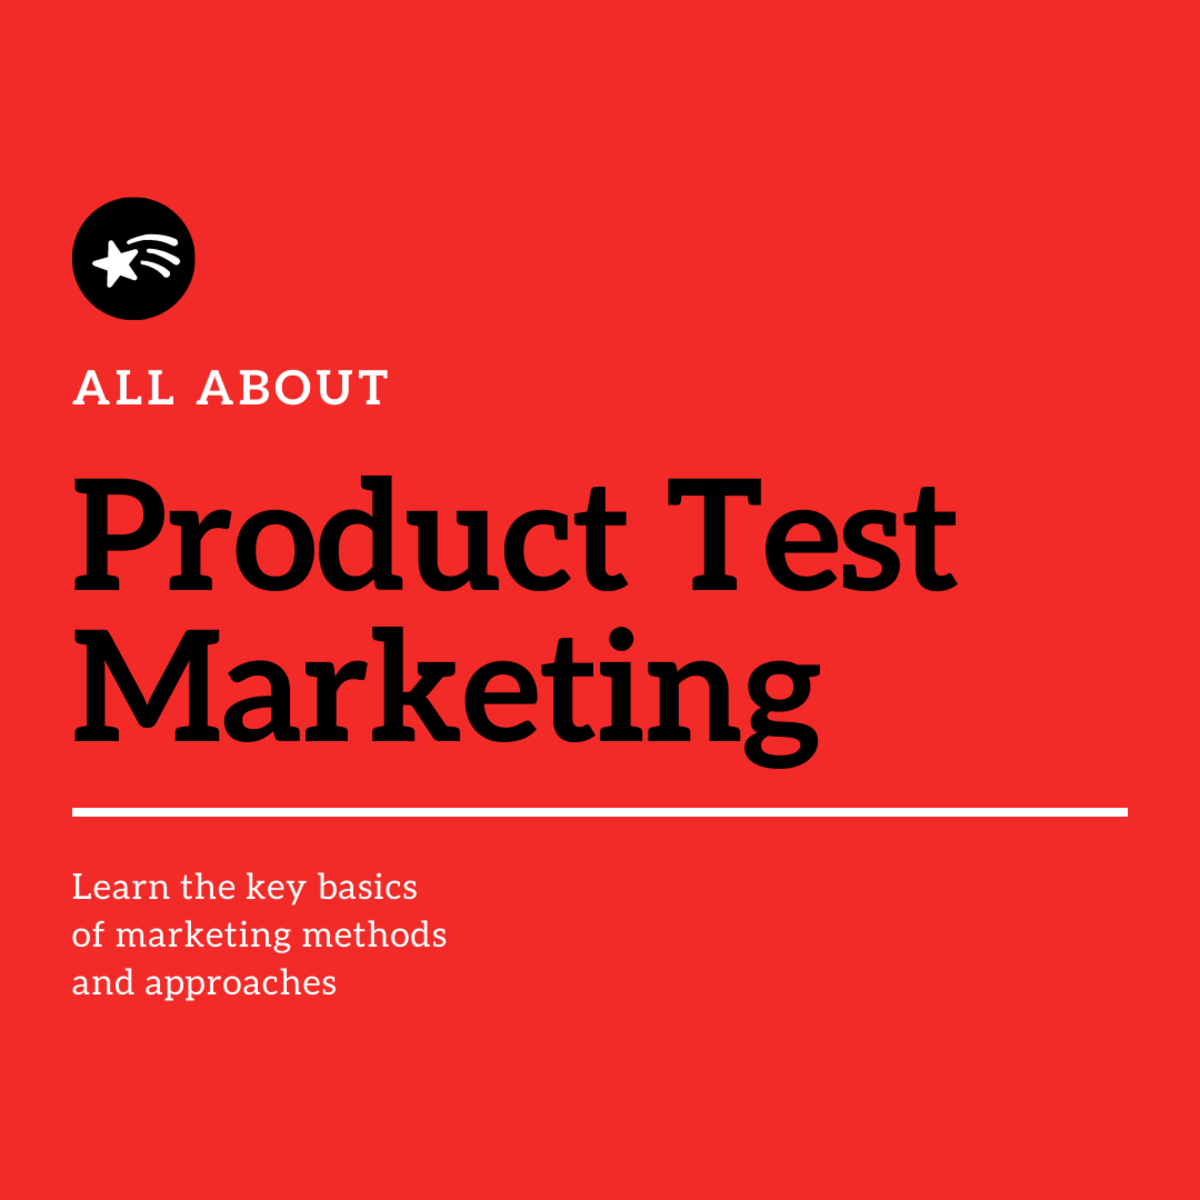 Basics of Product Test Marketing